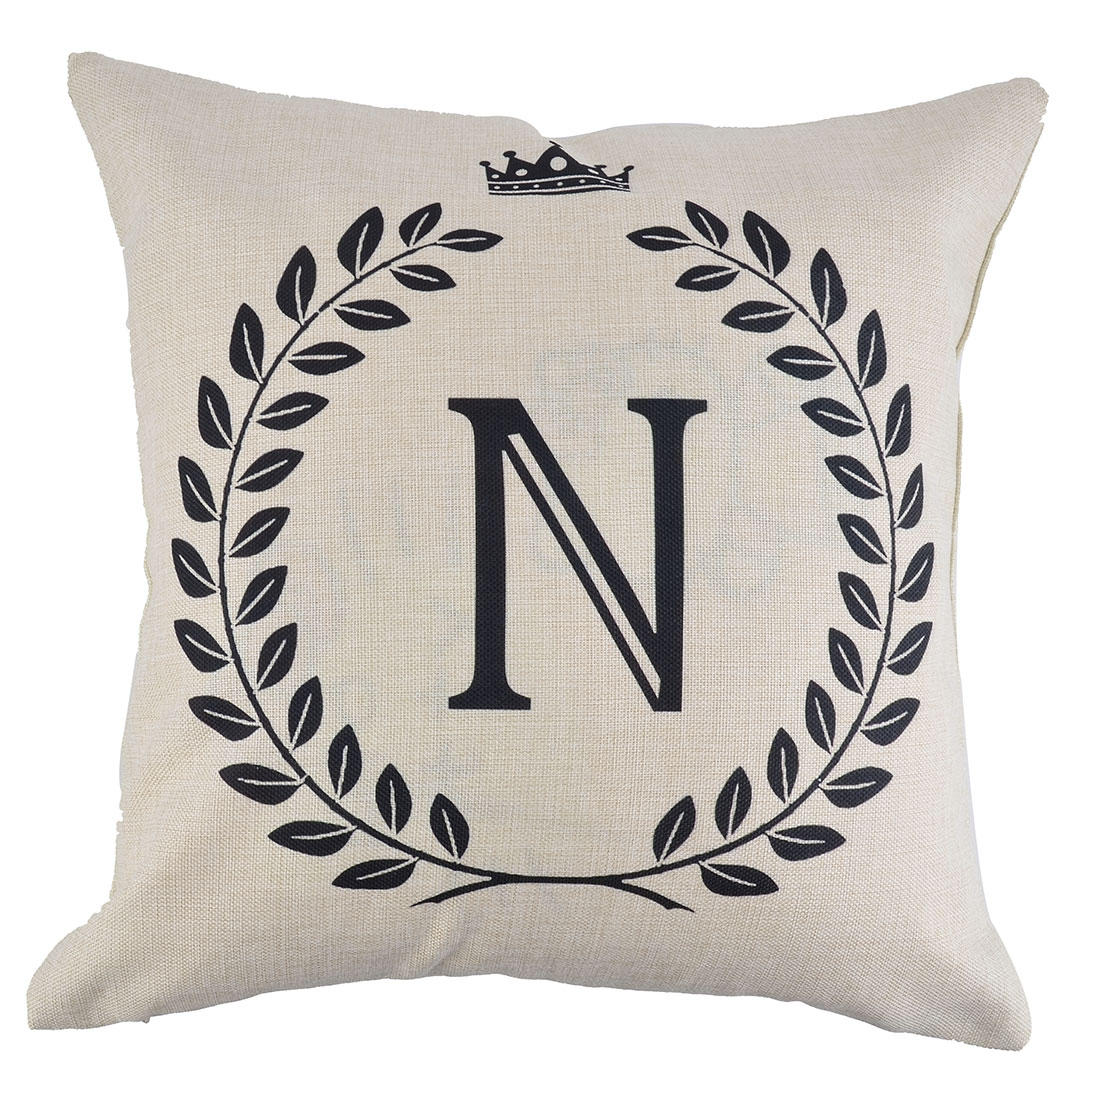 Home Cotton Linen Letter N Pattern Zippered Pillow Cushion Cover 18 x 18 Inches